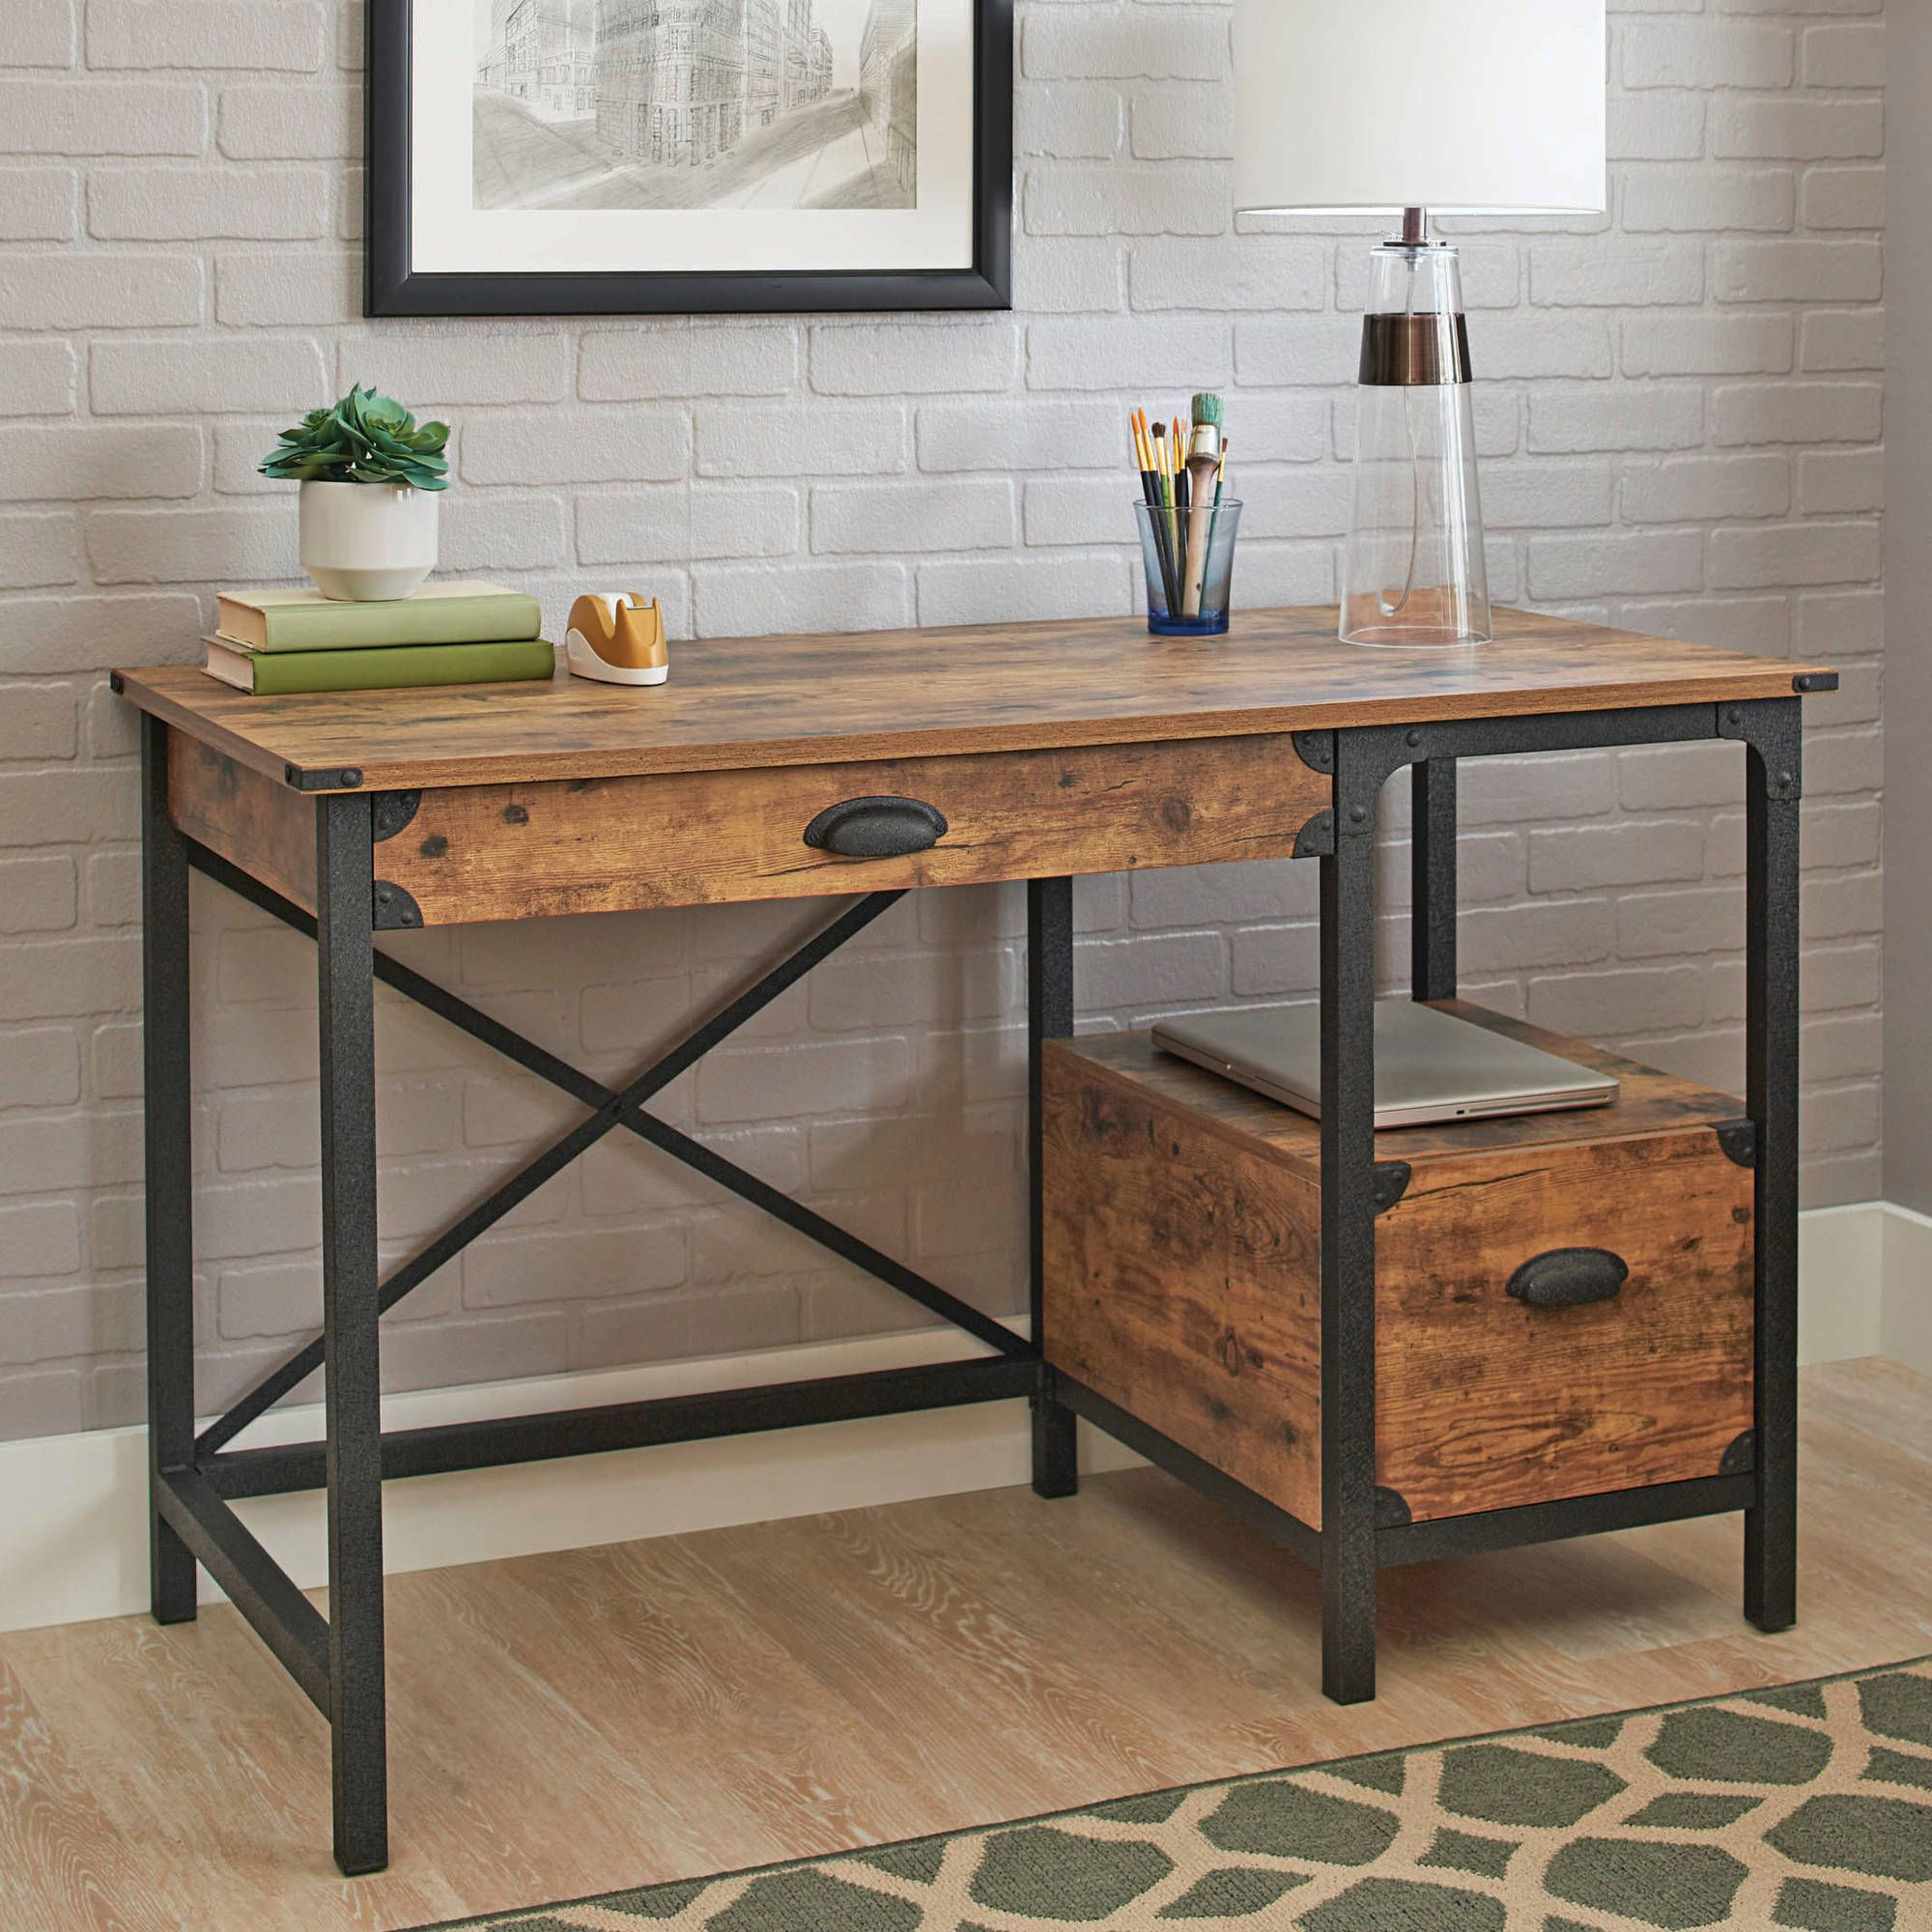 22 Diy Computer Desk Ideas That Make More Spirit Work Rustic Home Offices Rustic Computer Desk Home Office Furniture